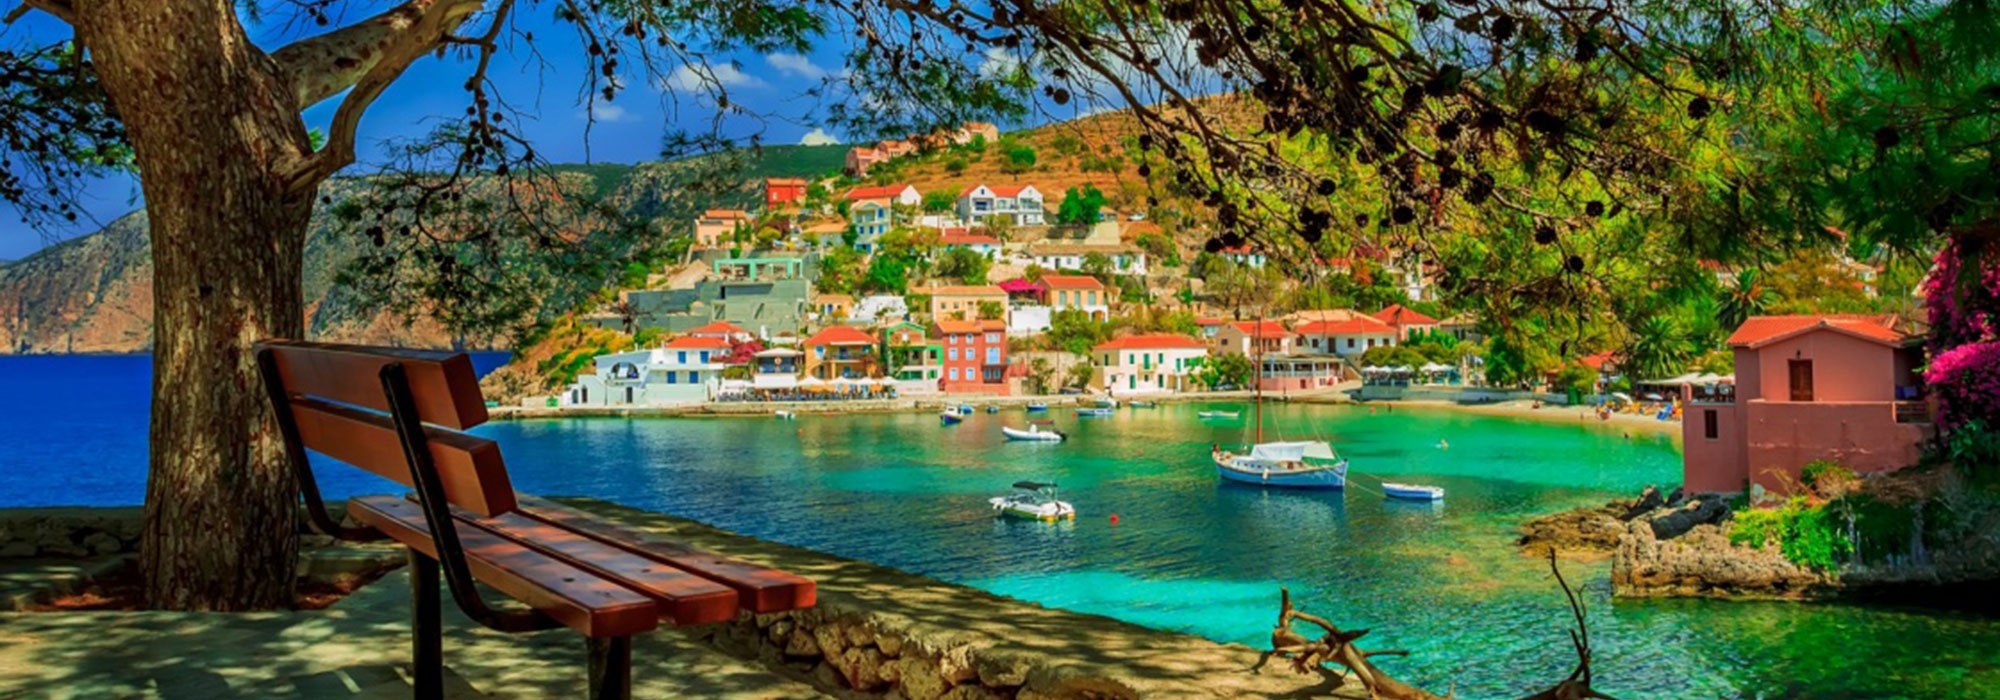 Why invest in Kefalonia